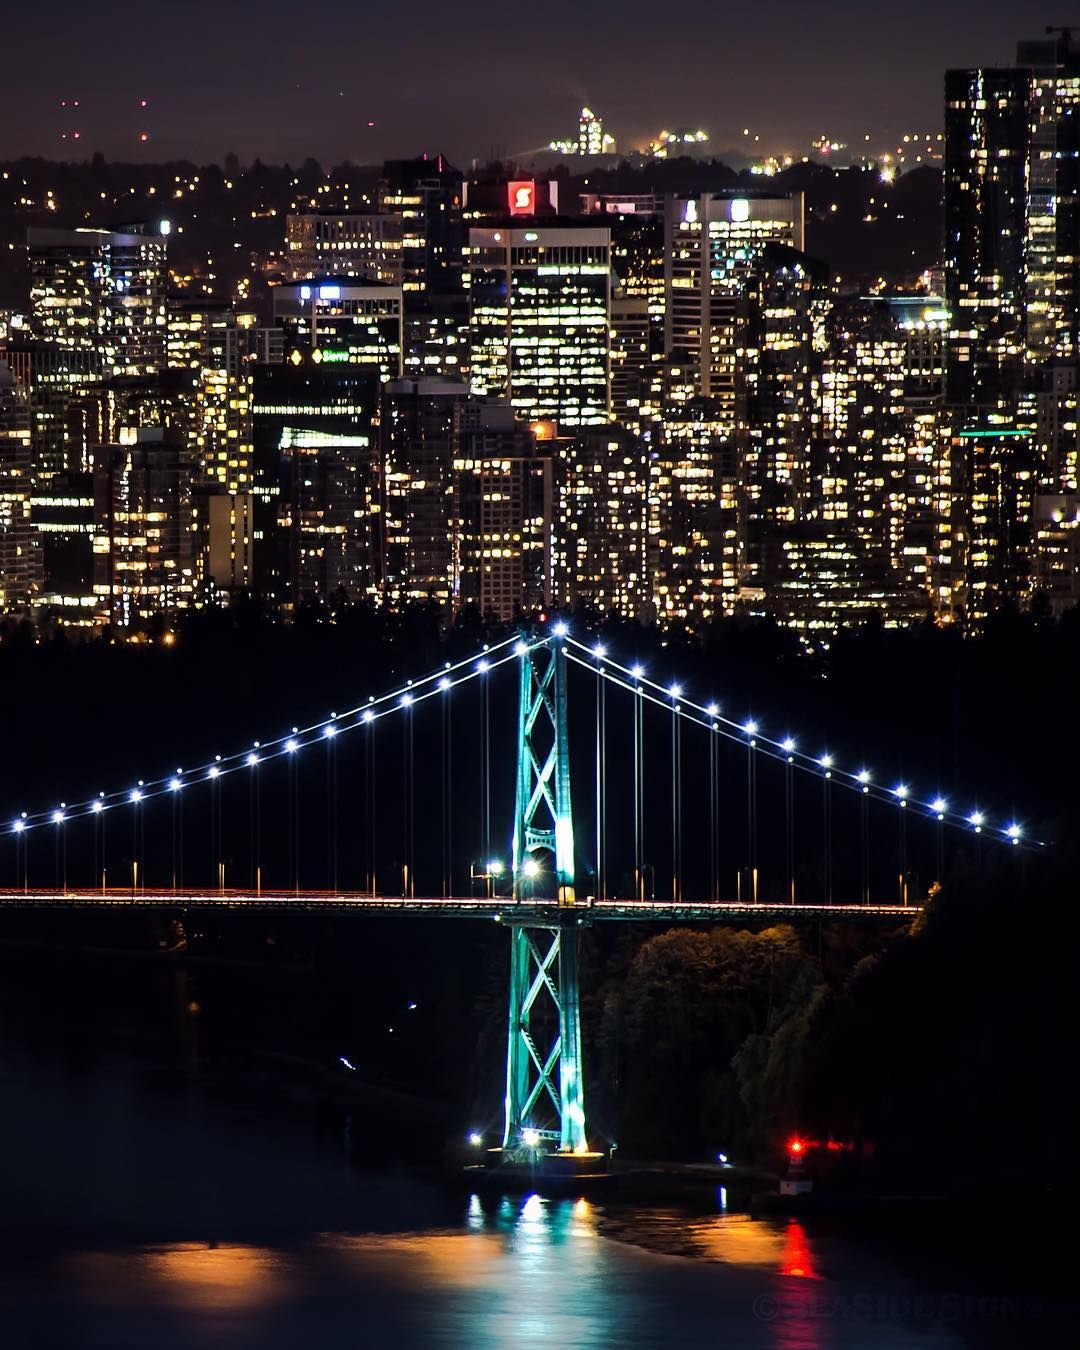 Big City Lights The Lions Gate Bridge Crosses The Burrard